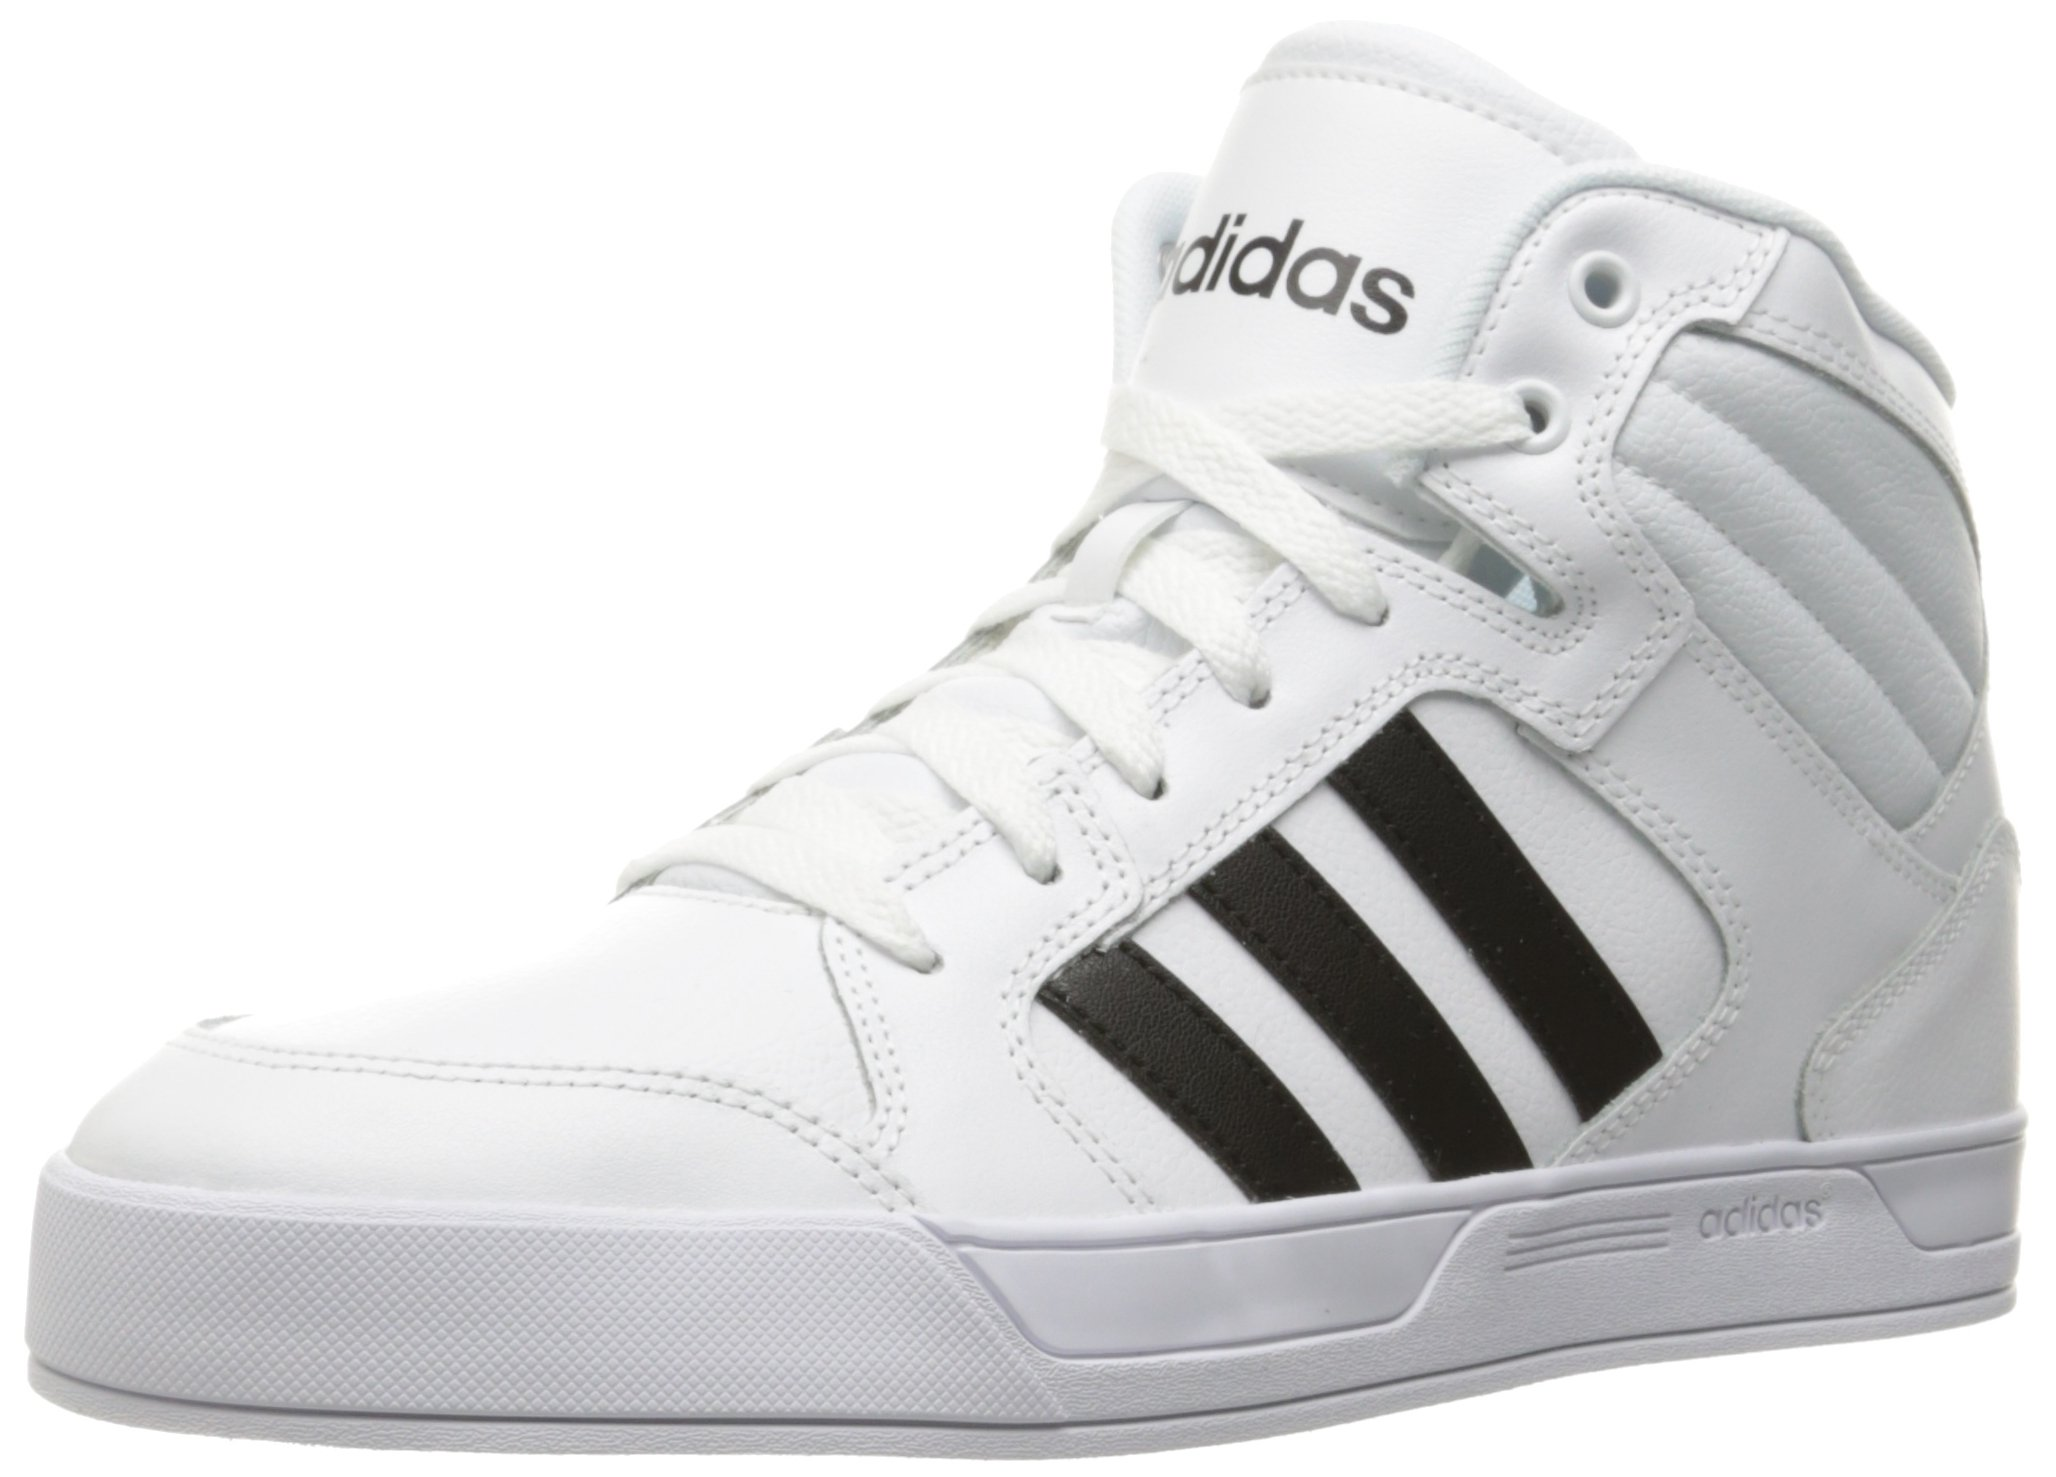 adidas Women's Shoes | Raleigh Mid Fashion Sneakers, White/Black/White, (11 M US)